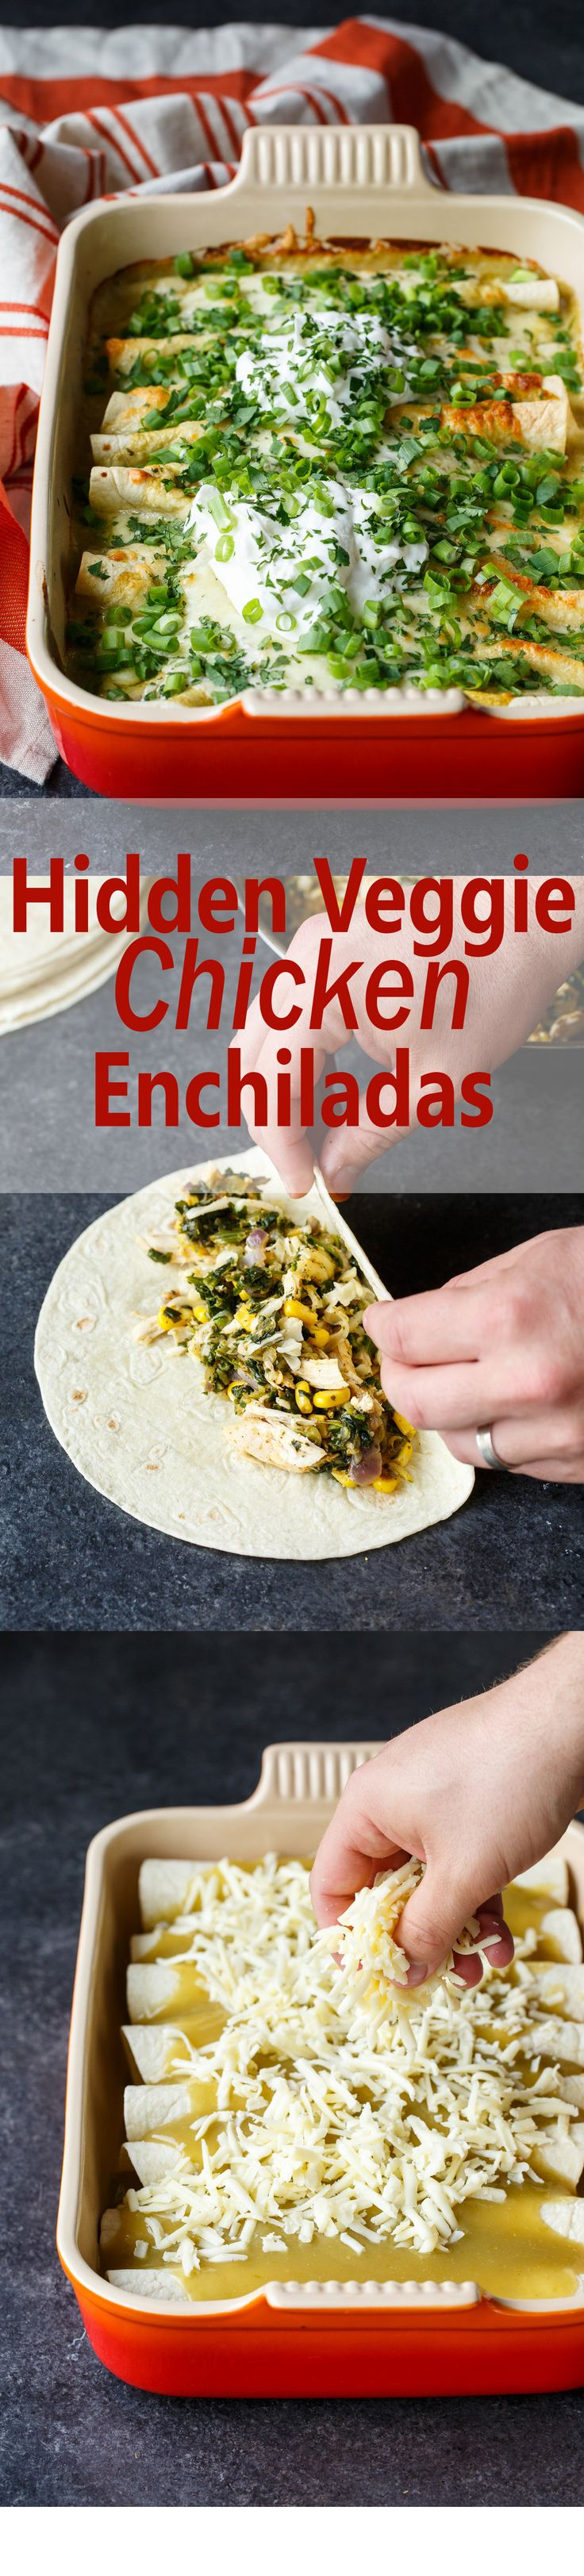 Hidden Veggie Chicken Enchiladas are filled with shredded zucchini, spinach, and corn… all under a layer of green enchilada sauce + LOTS of cheese!  Your kids will never know they are eating healthy vegetables!  It's a meal they'll love and you'll feel good about serving!